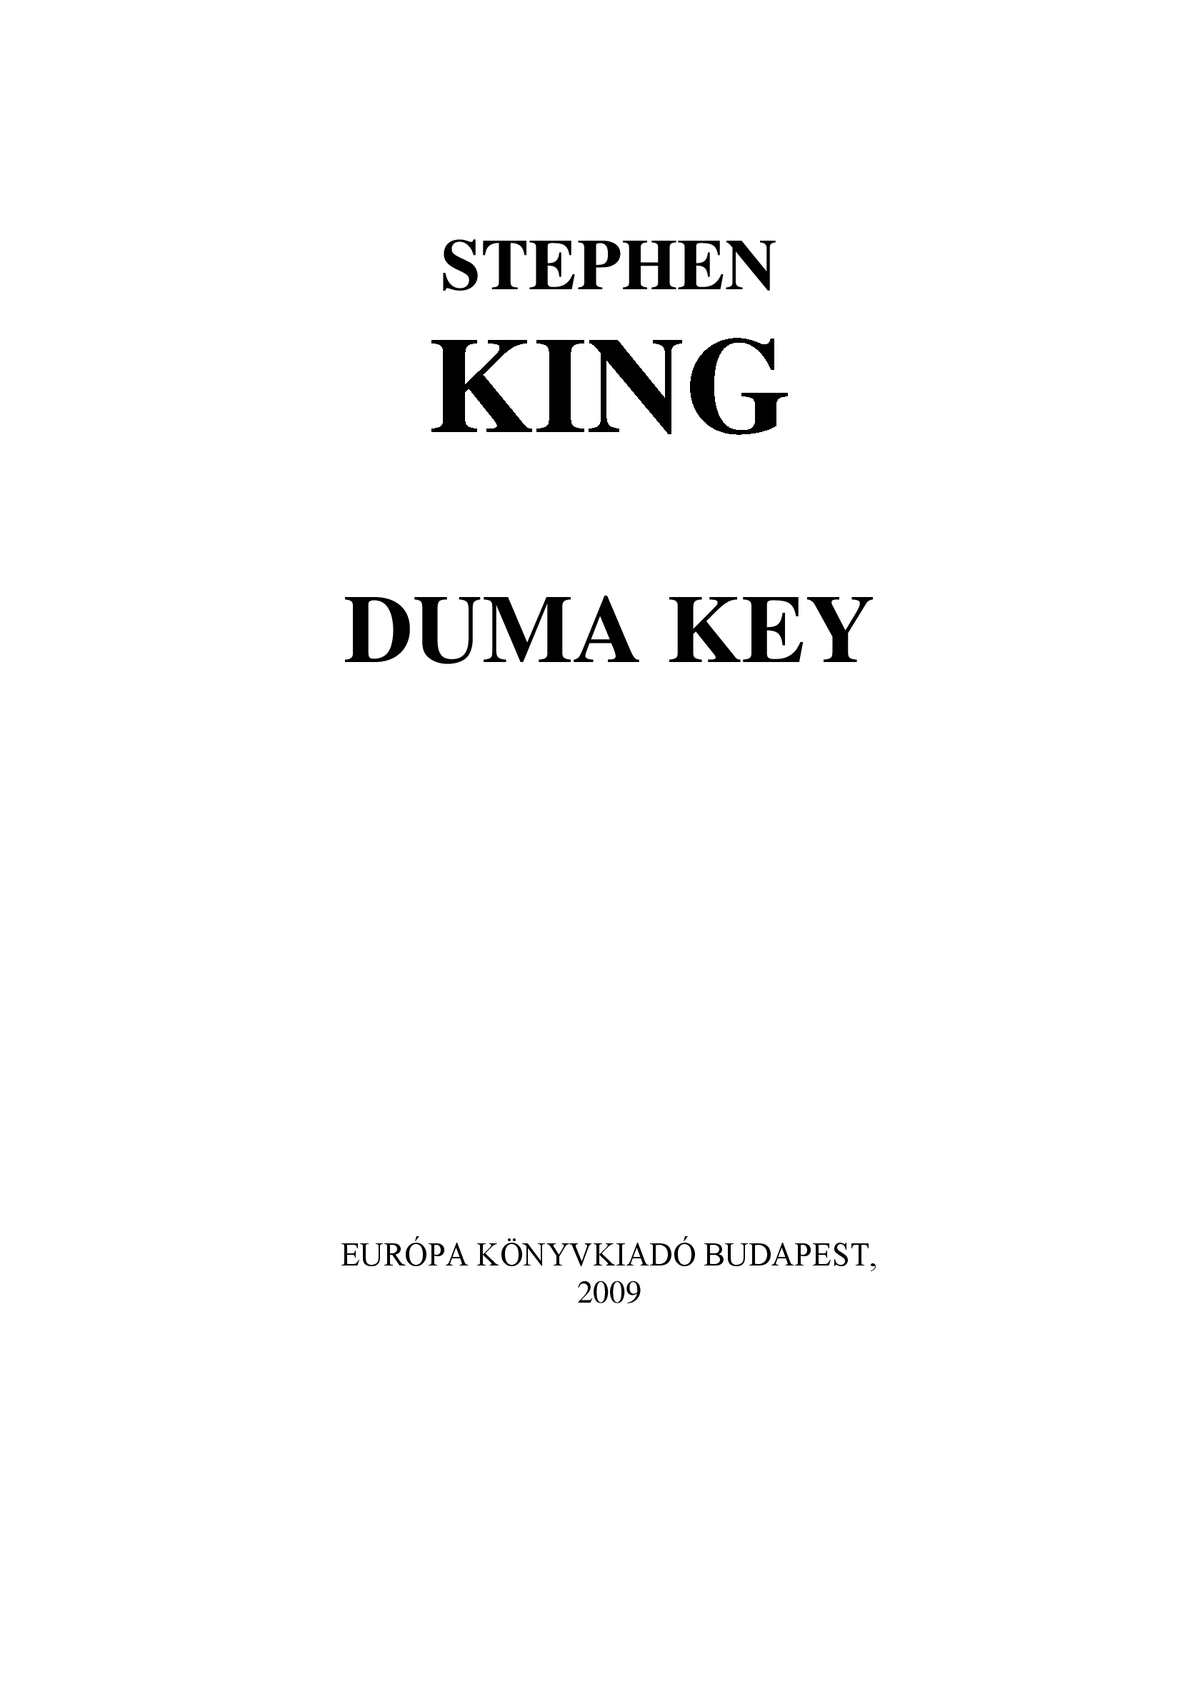 8c70af6cd4 Calaméo - Stephen King - Duma Key